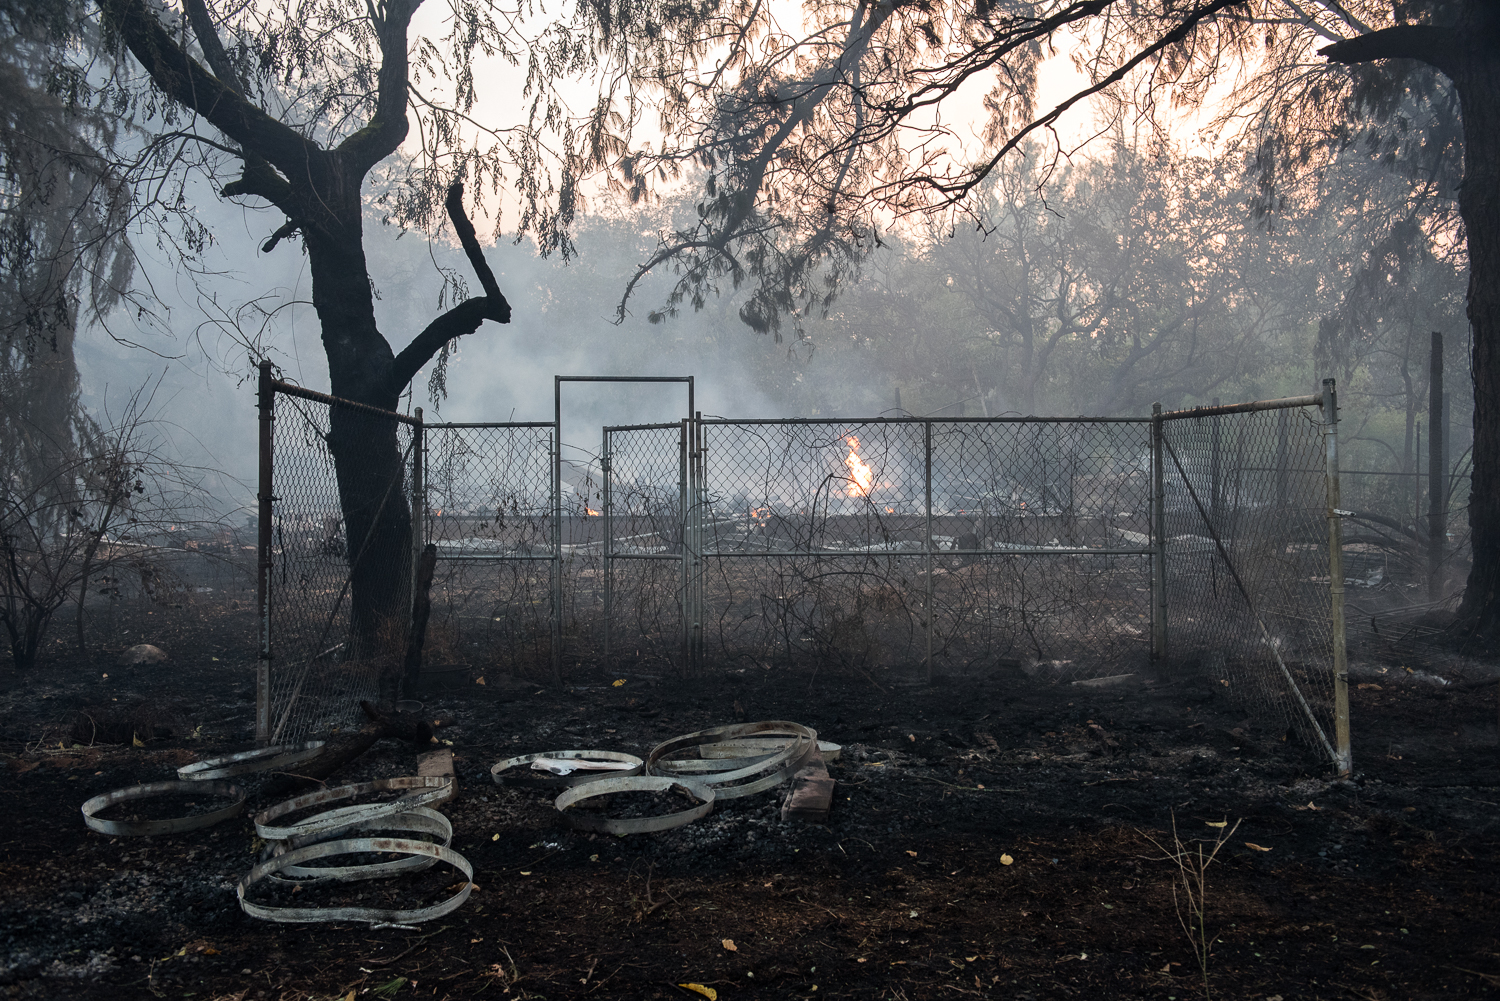 The remains of a burned house smoulder on the morning of Saturday, 14 October 2017, as the sun rises on Sonoma during the devastating North Bay wildfires.